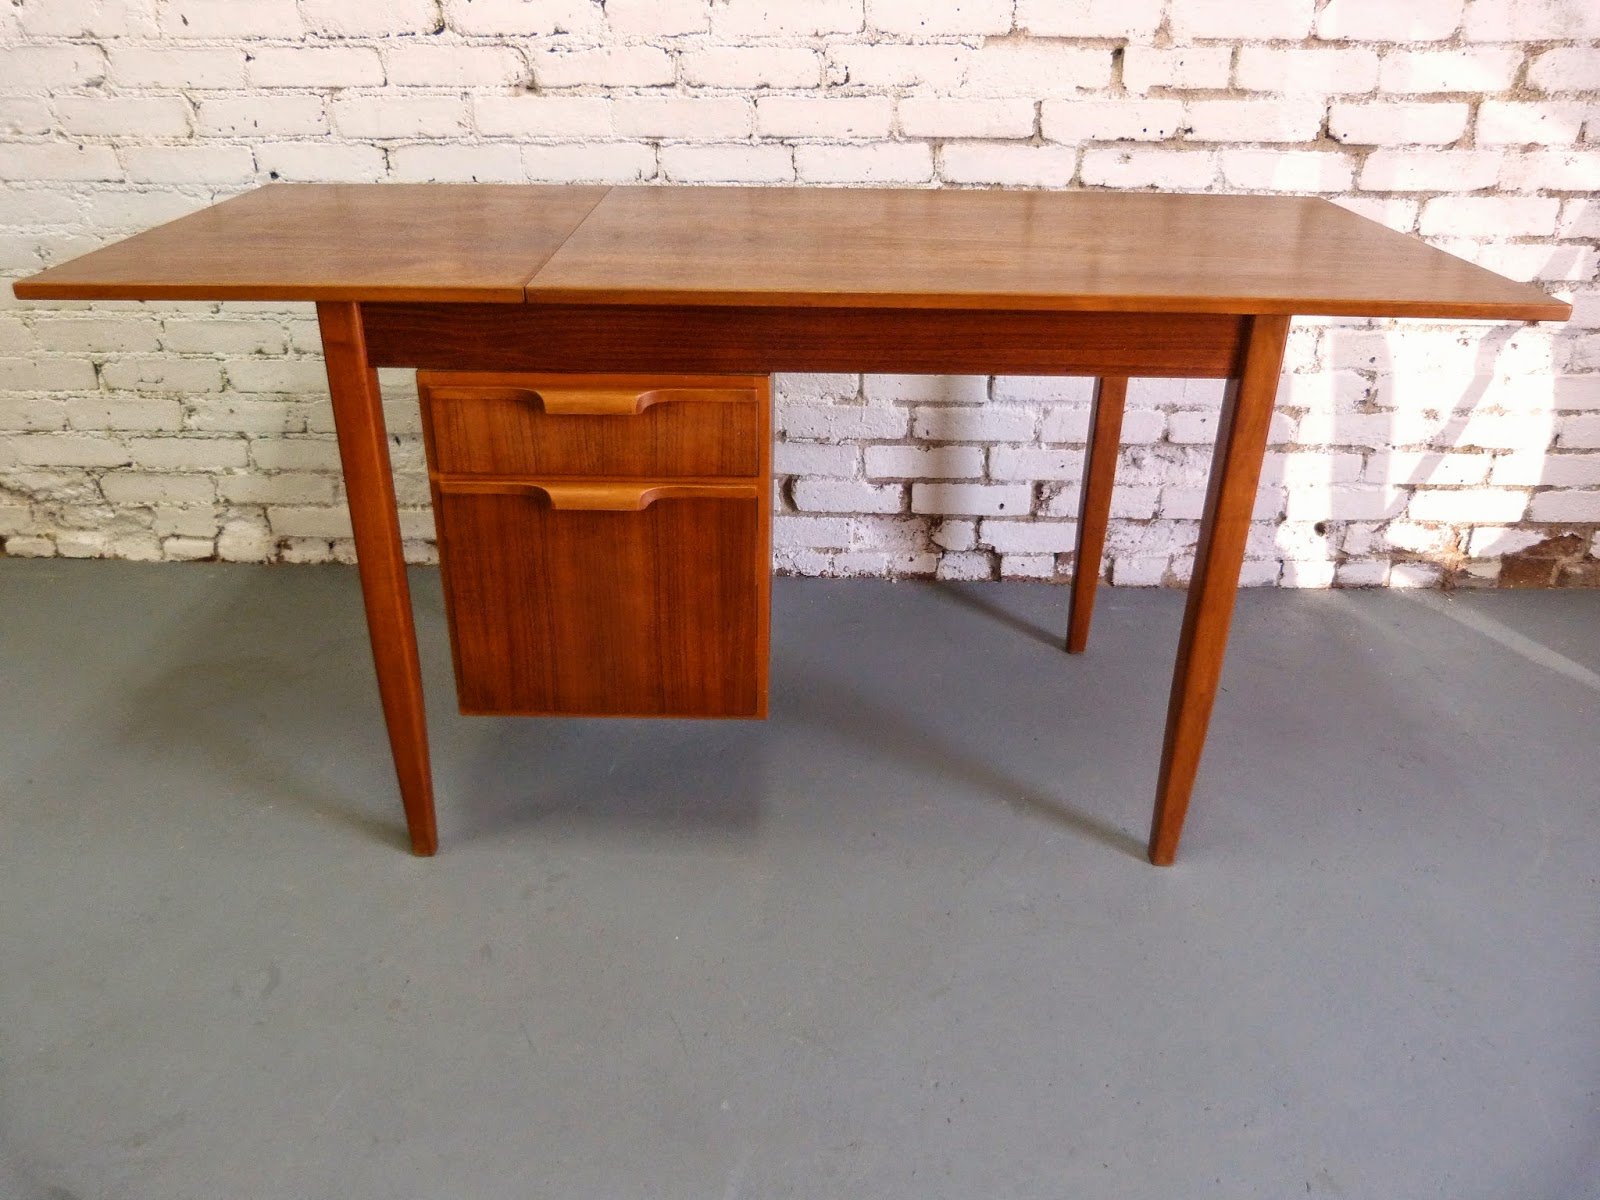 Danish Modern extened teak mid-century drop leaf desk